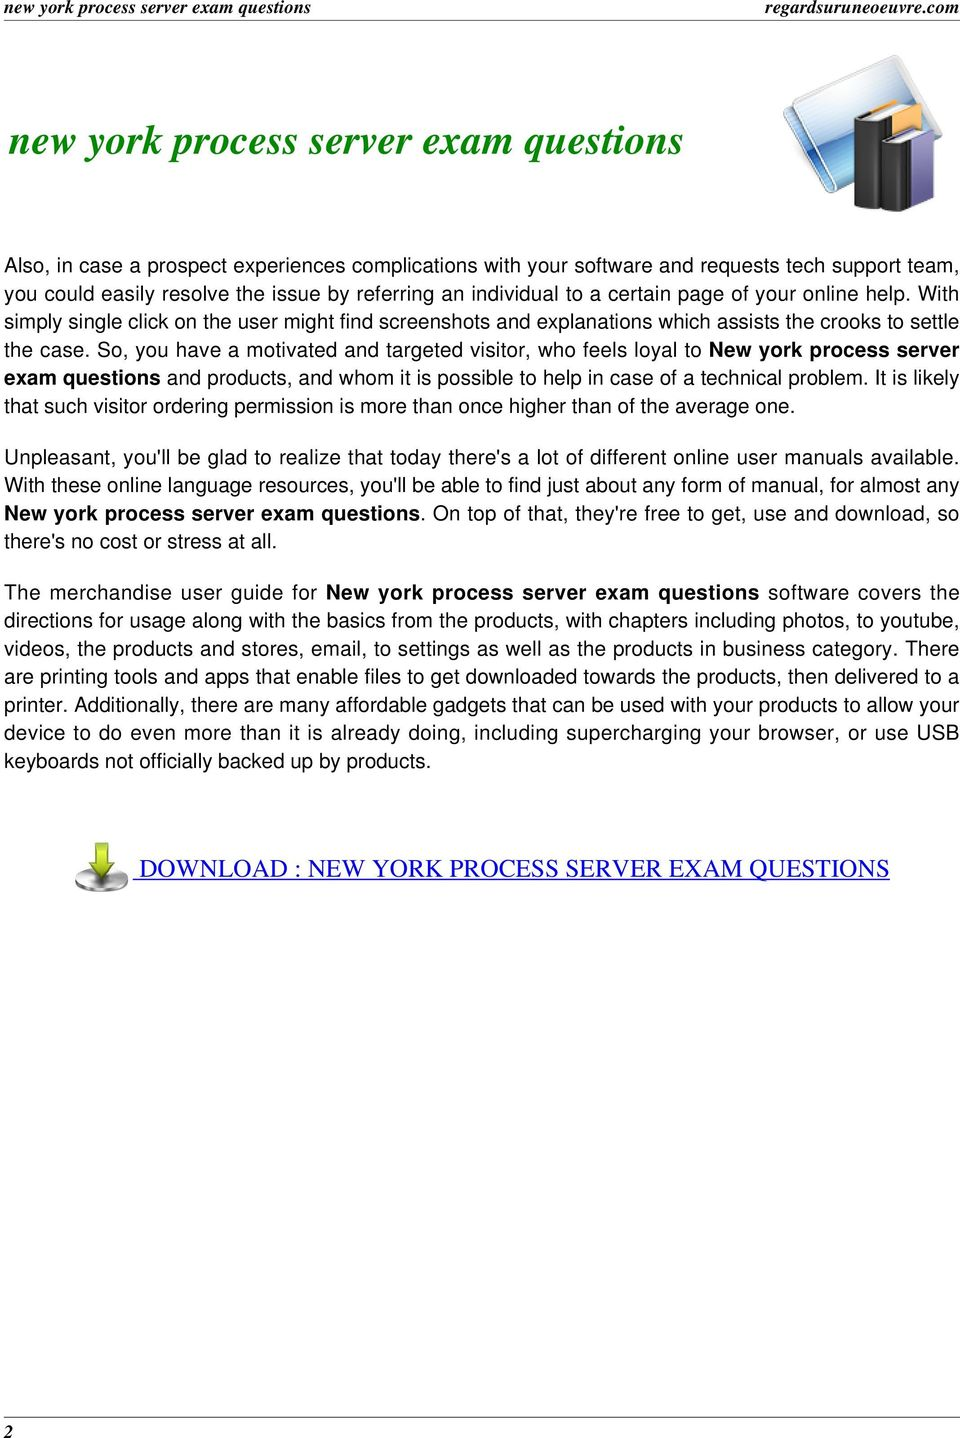 how to become process server in ny